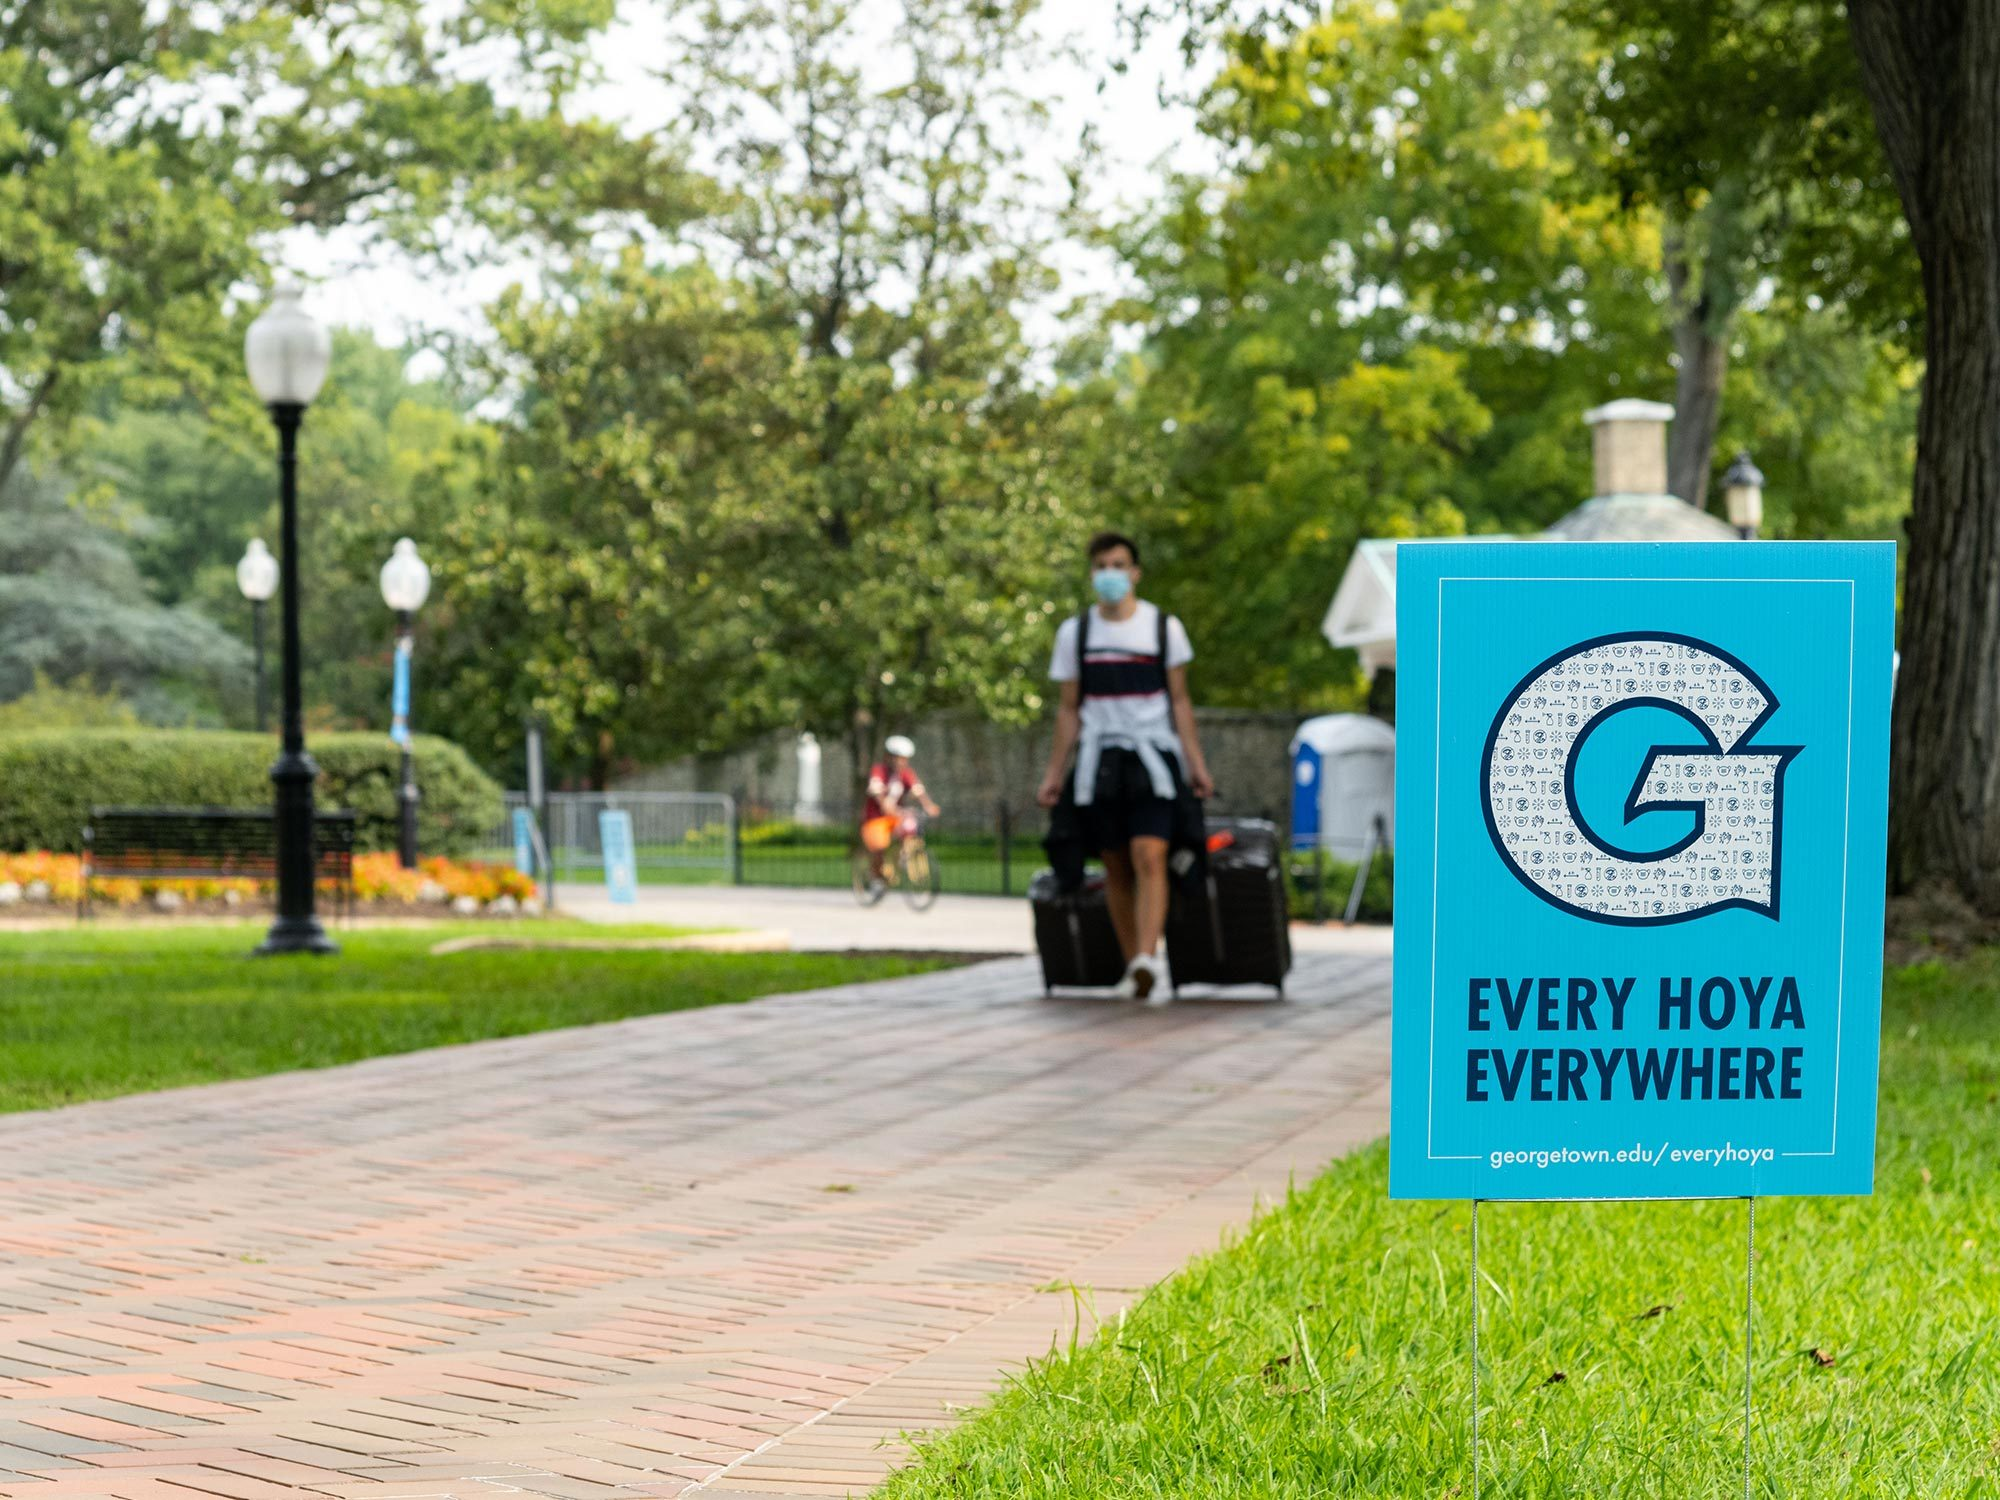 A student pulls his suitcase through campus past a public health sign